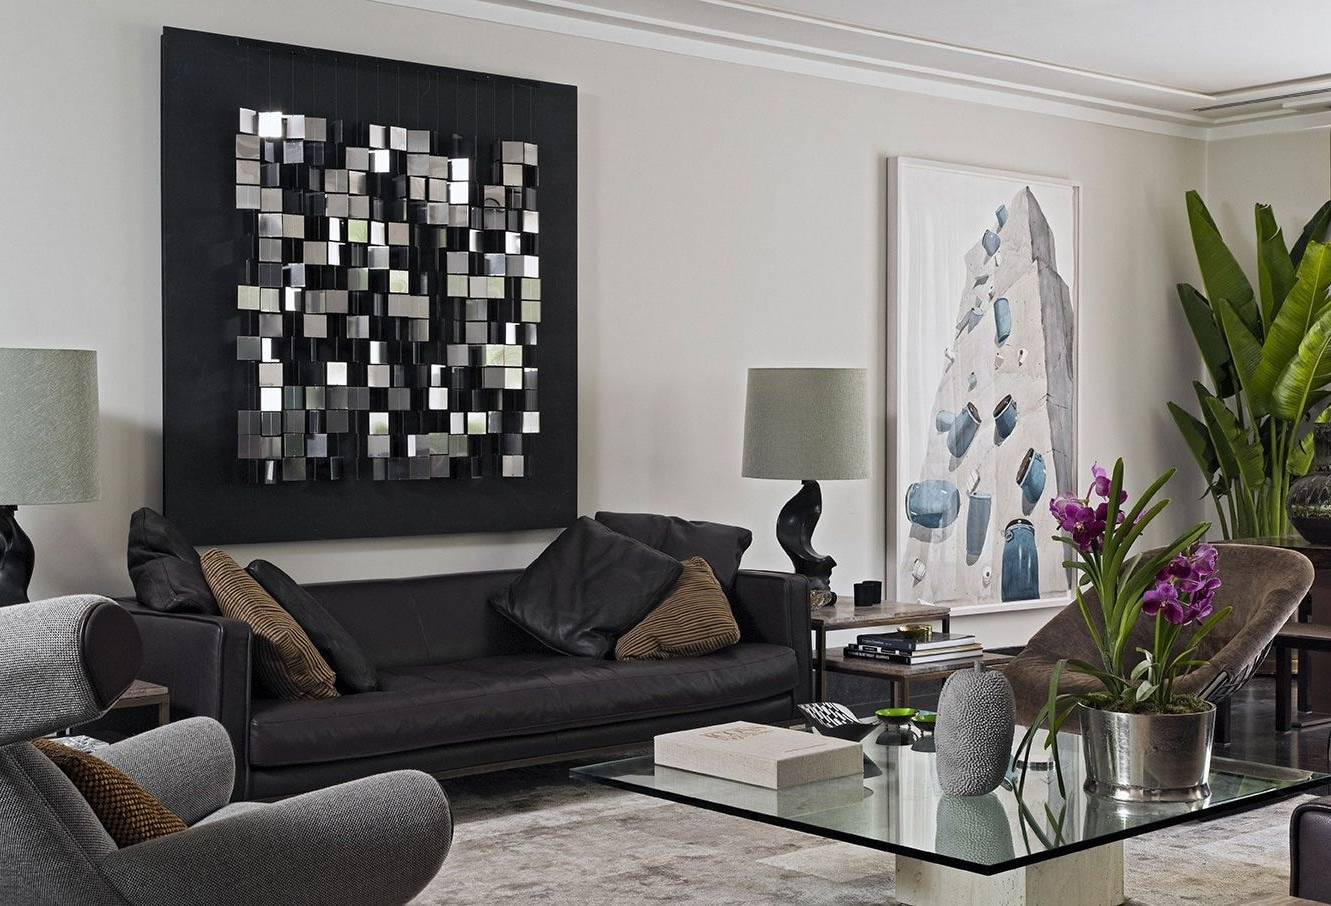 Newest Wall Art For Living Room – Home Design Ideas And Pictures Intended For Modern Wall Art Decors (View 8 of 15)